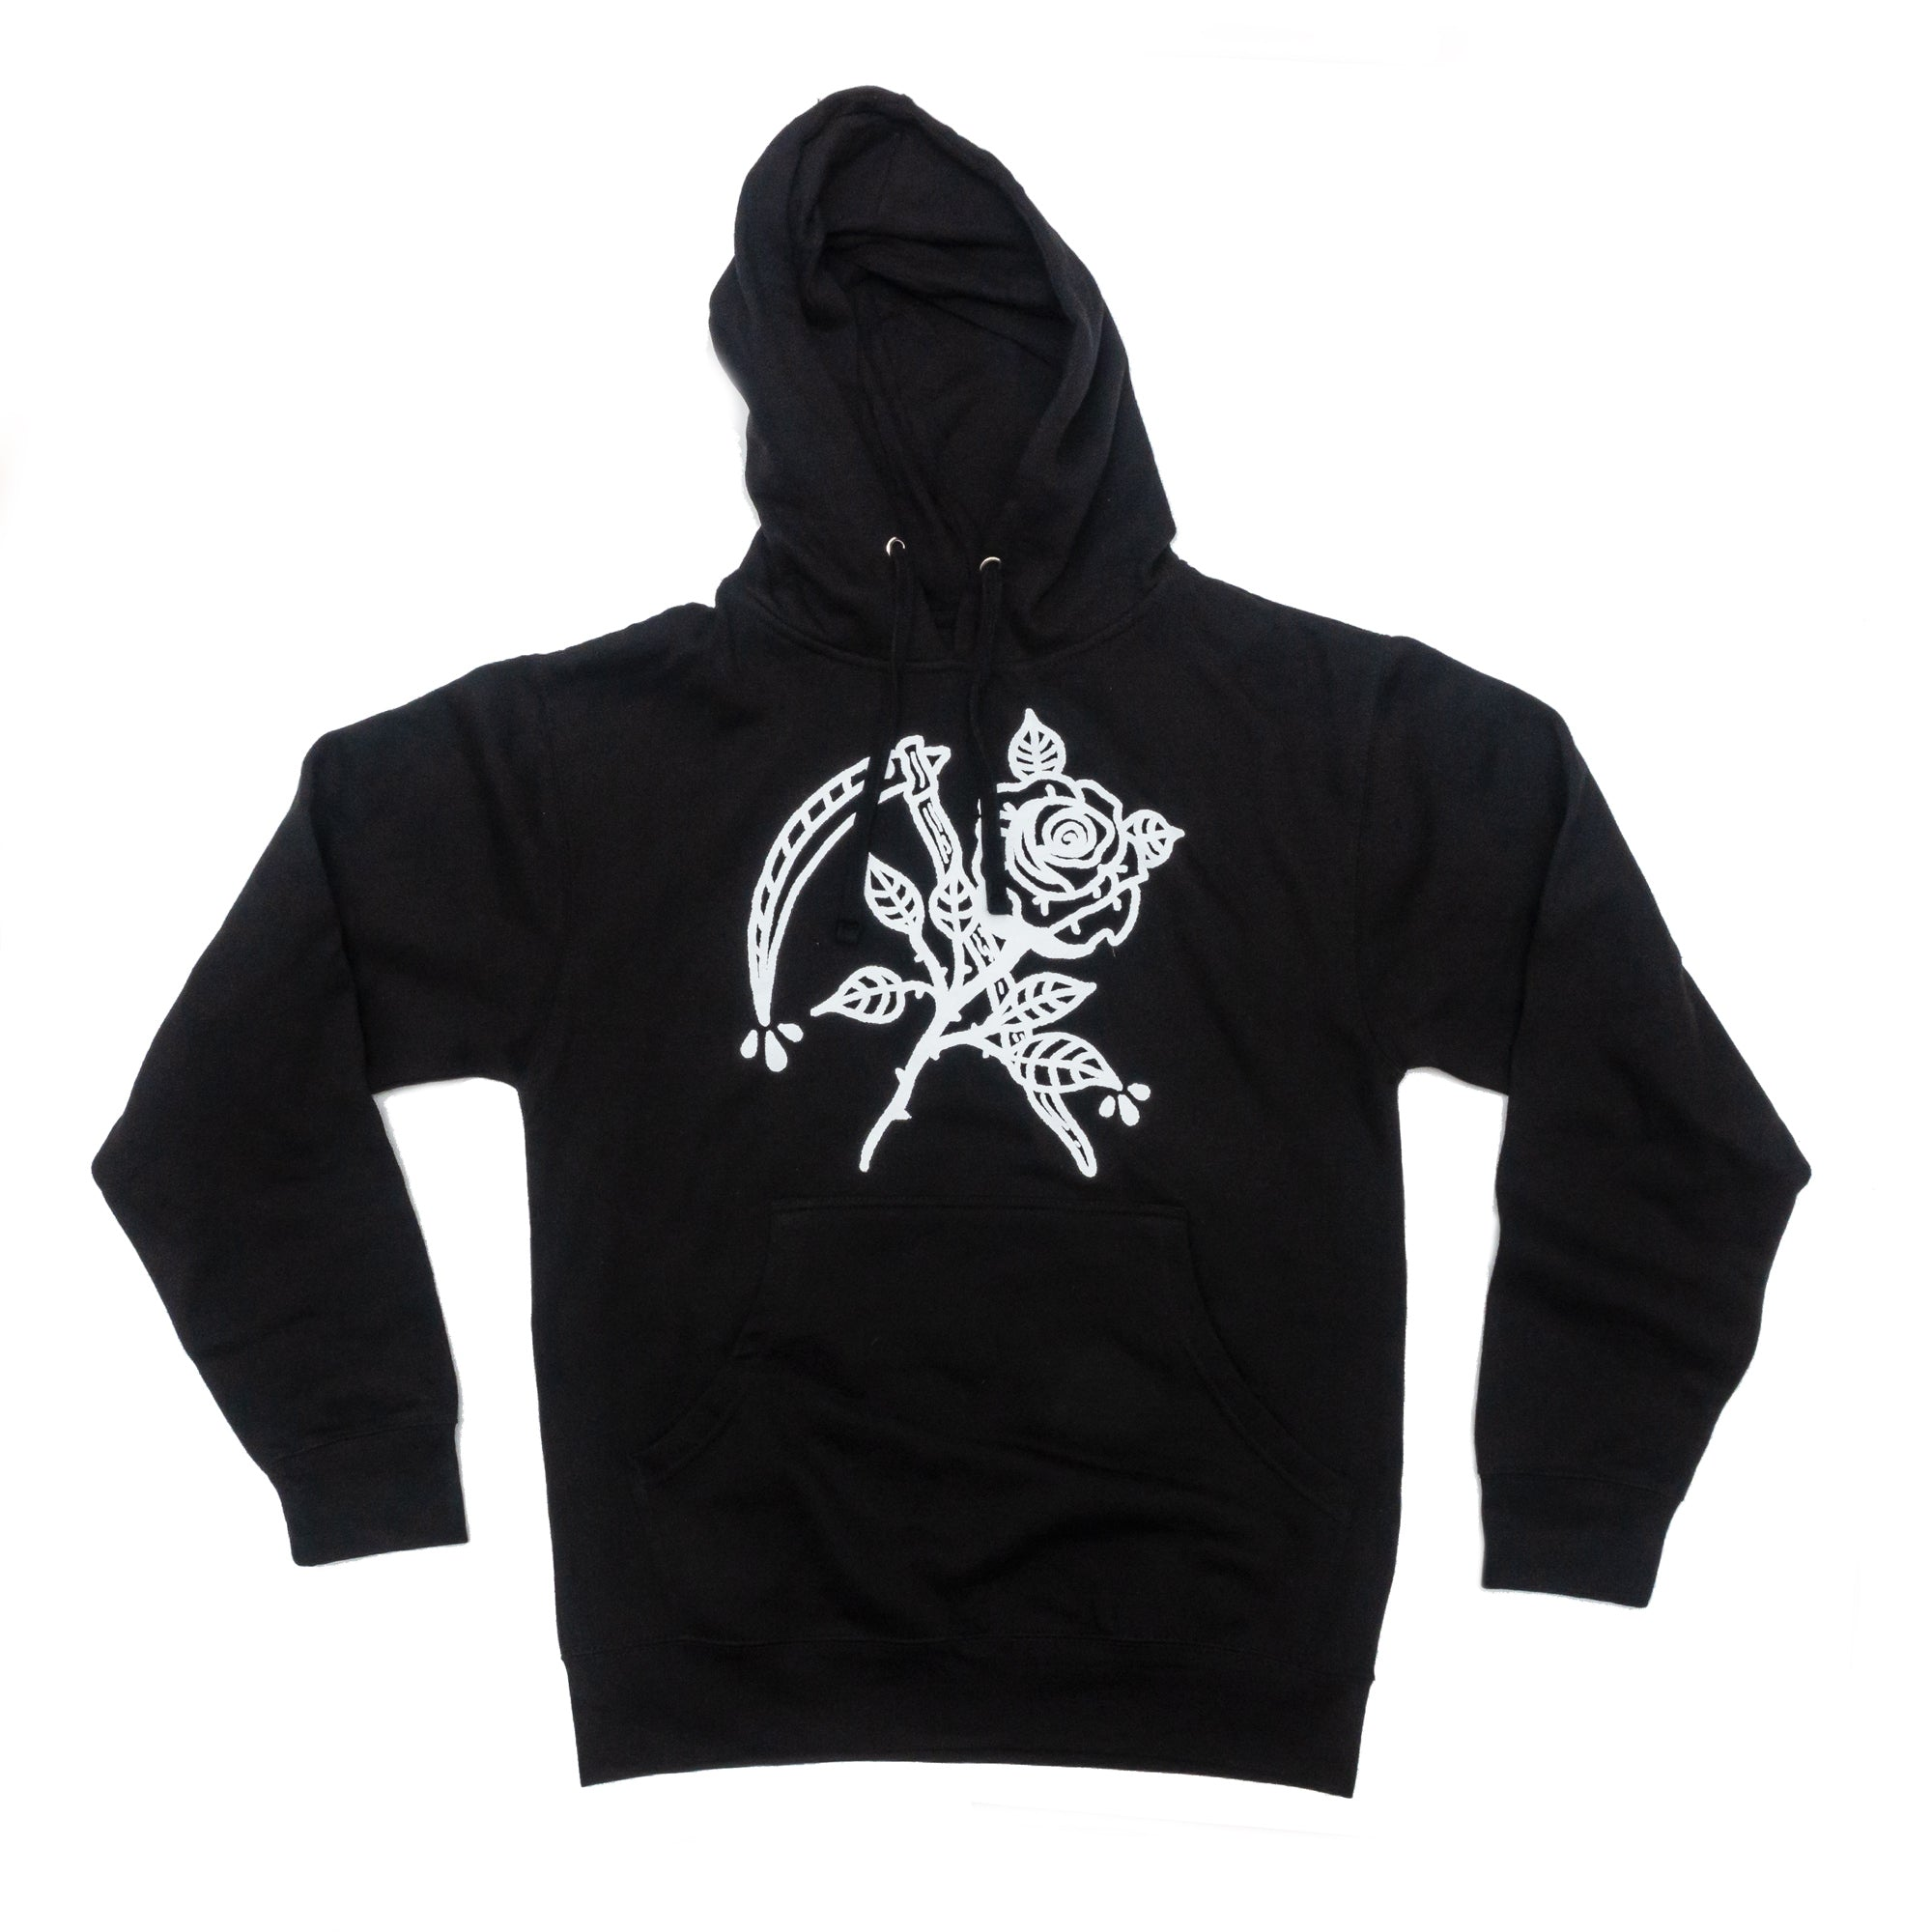 Rose and Scythe Pullover Hooded Sweatshirt